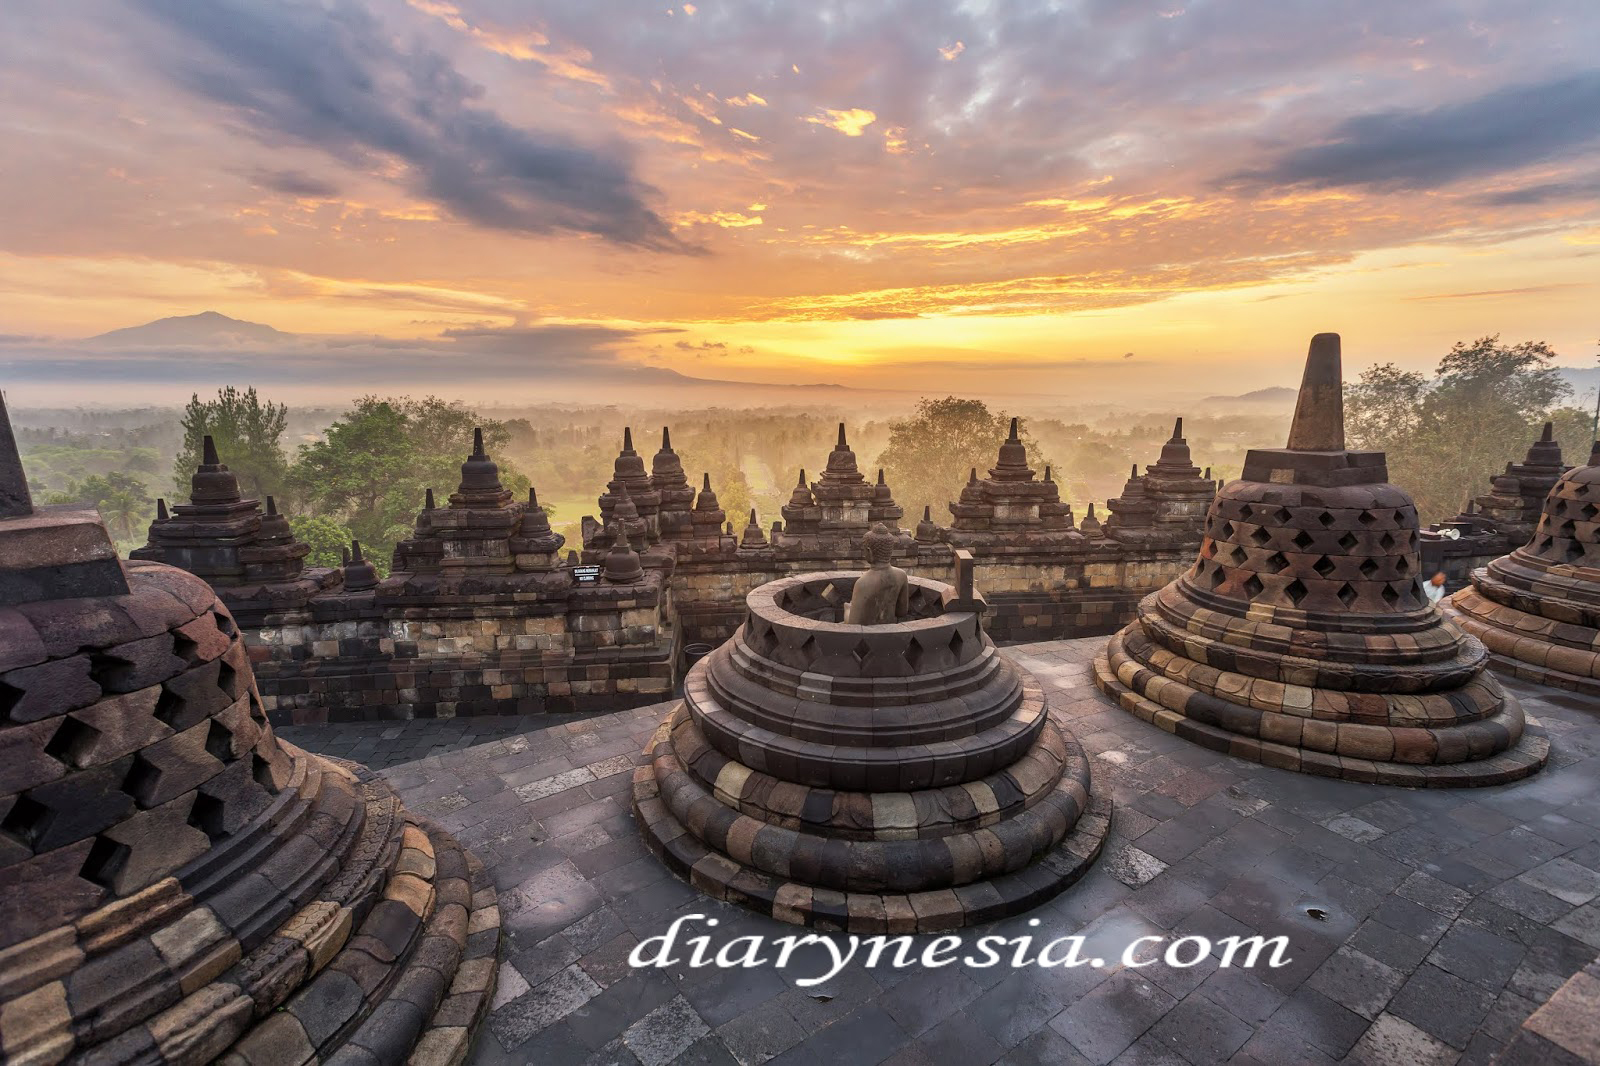 historic places in yogyakarta, things to do in yogyakarta region, Borobudur temple, diarynesia